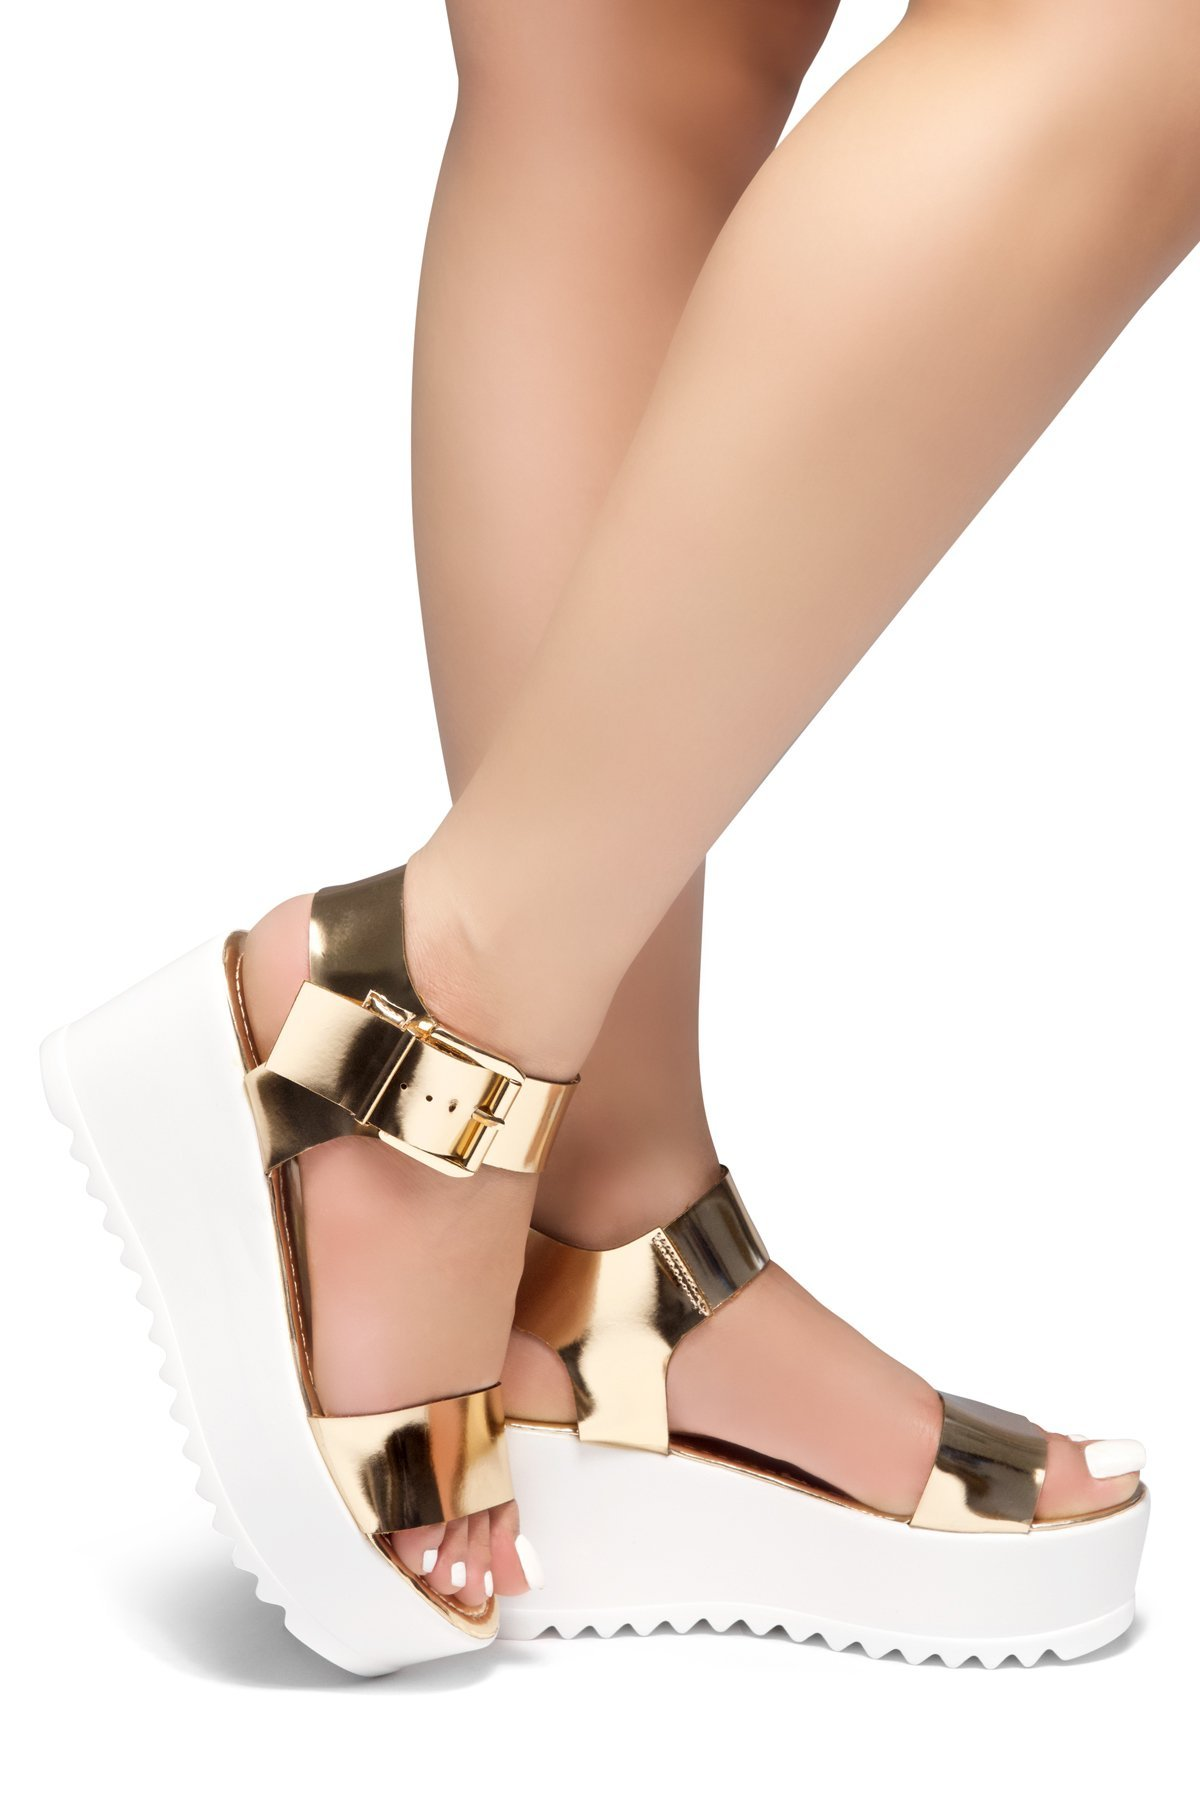 Herstyle Womens's Carita-Open Toe Ankle Strap Platform Wedge Rose Gold10